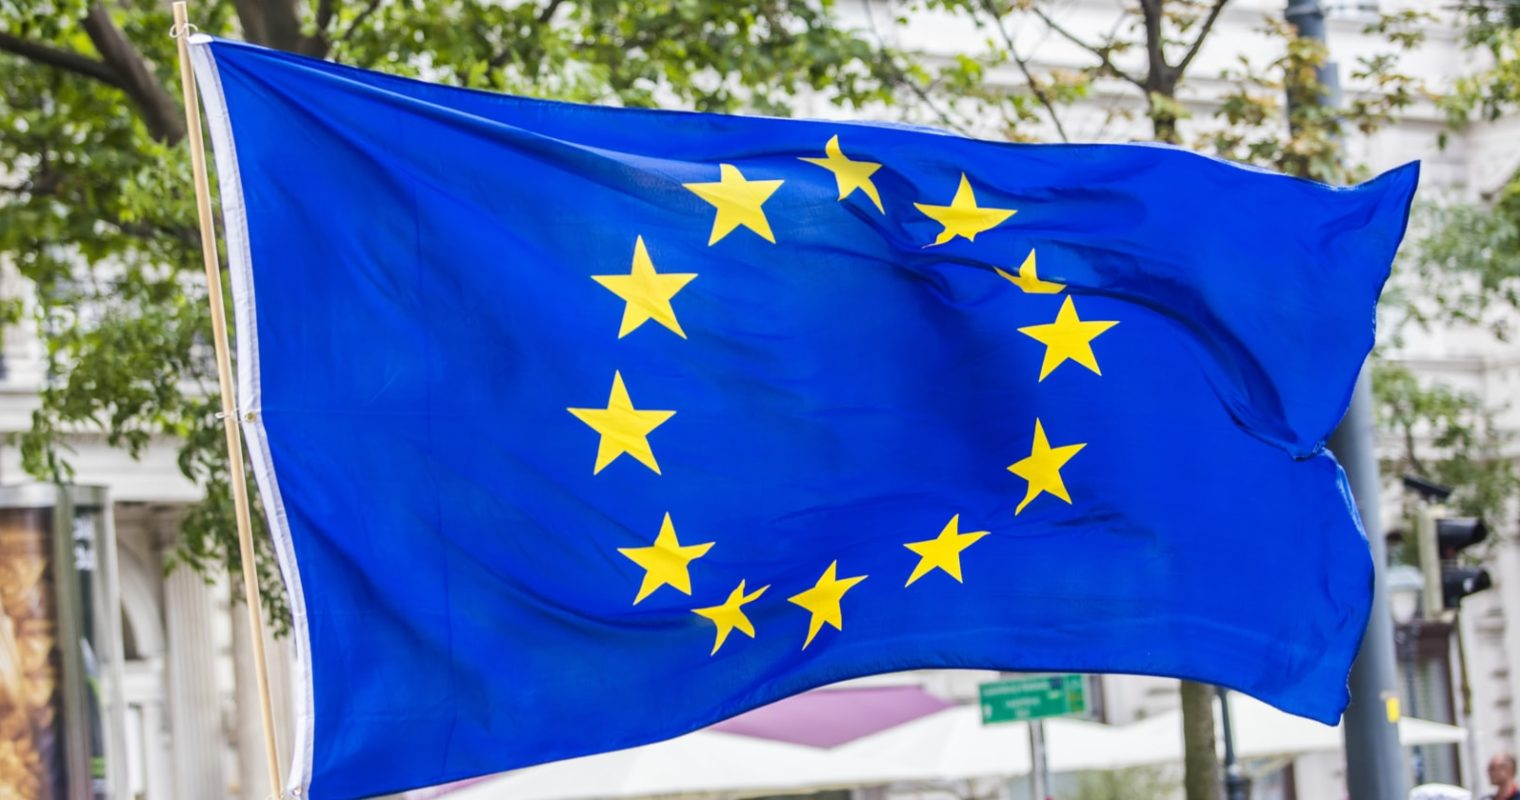 Google May Be Forced to Change Its Business Practices in Europe